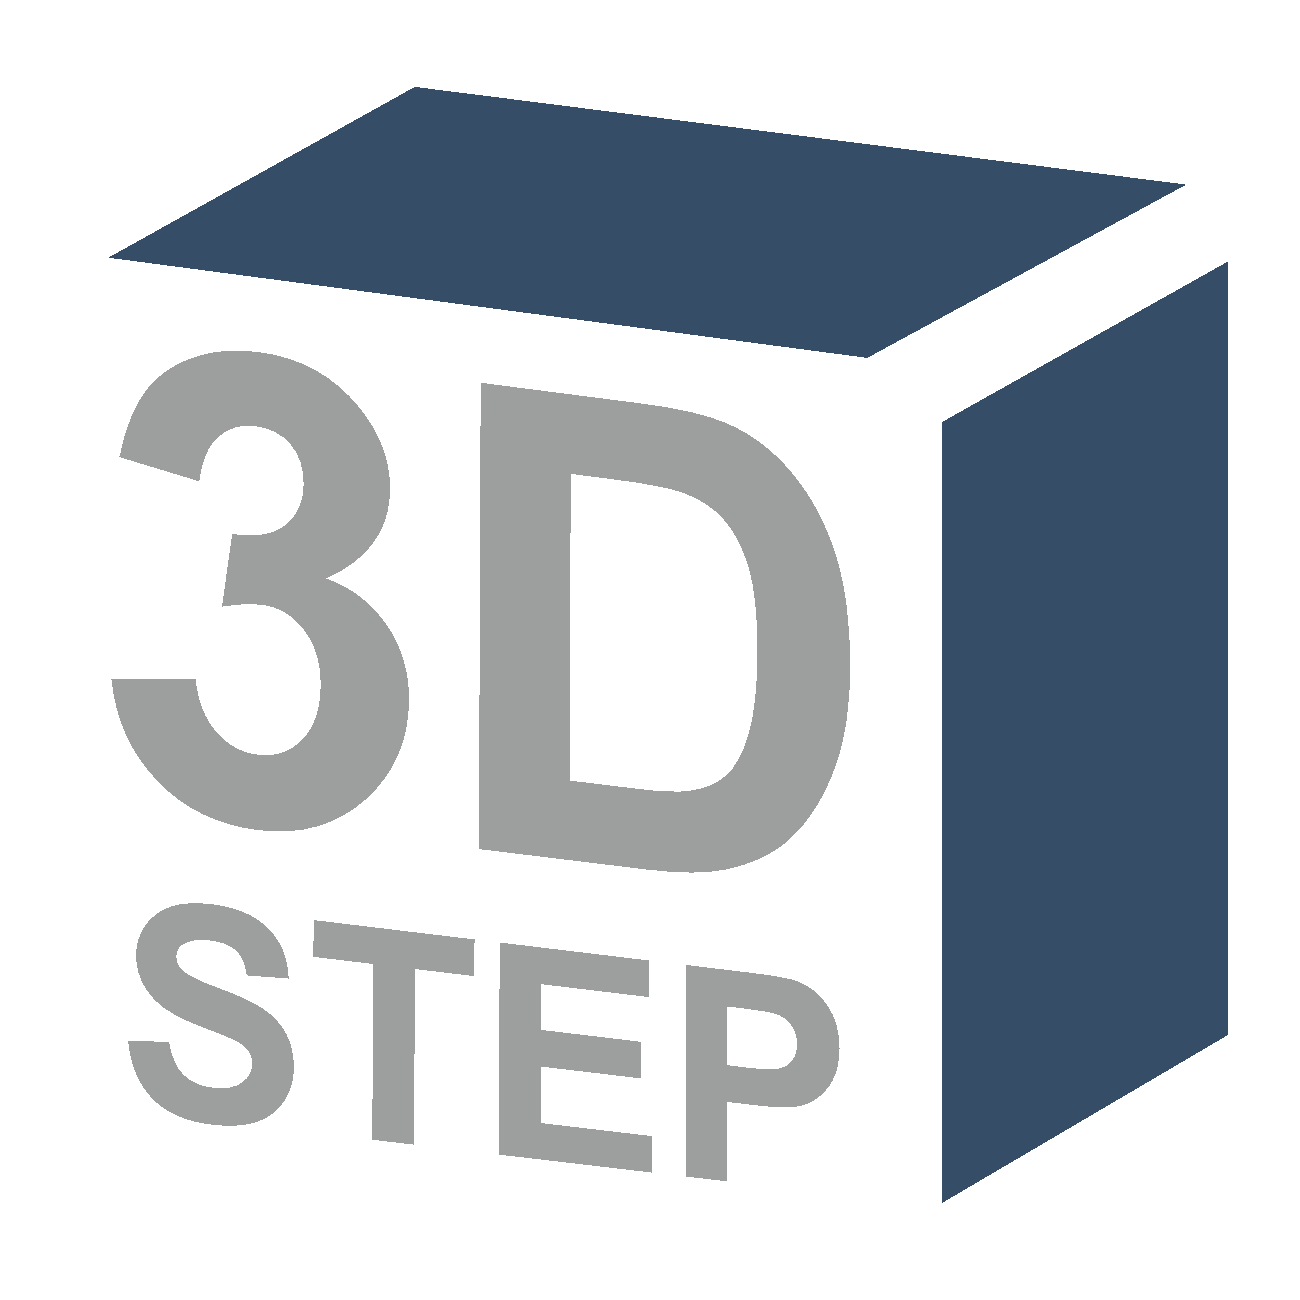 3D_STEP.png